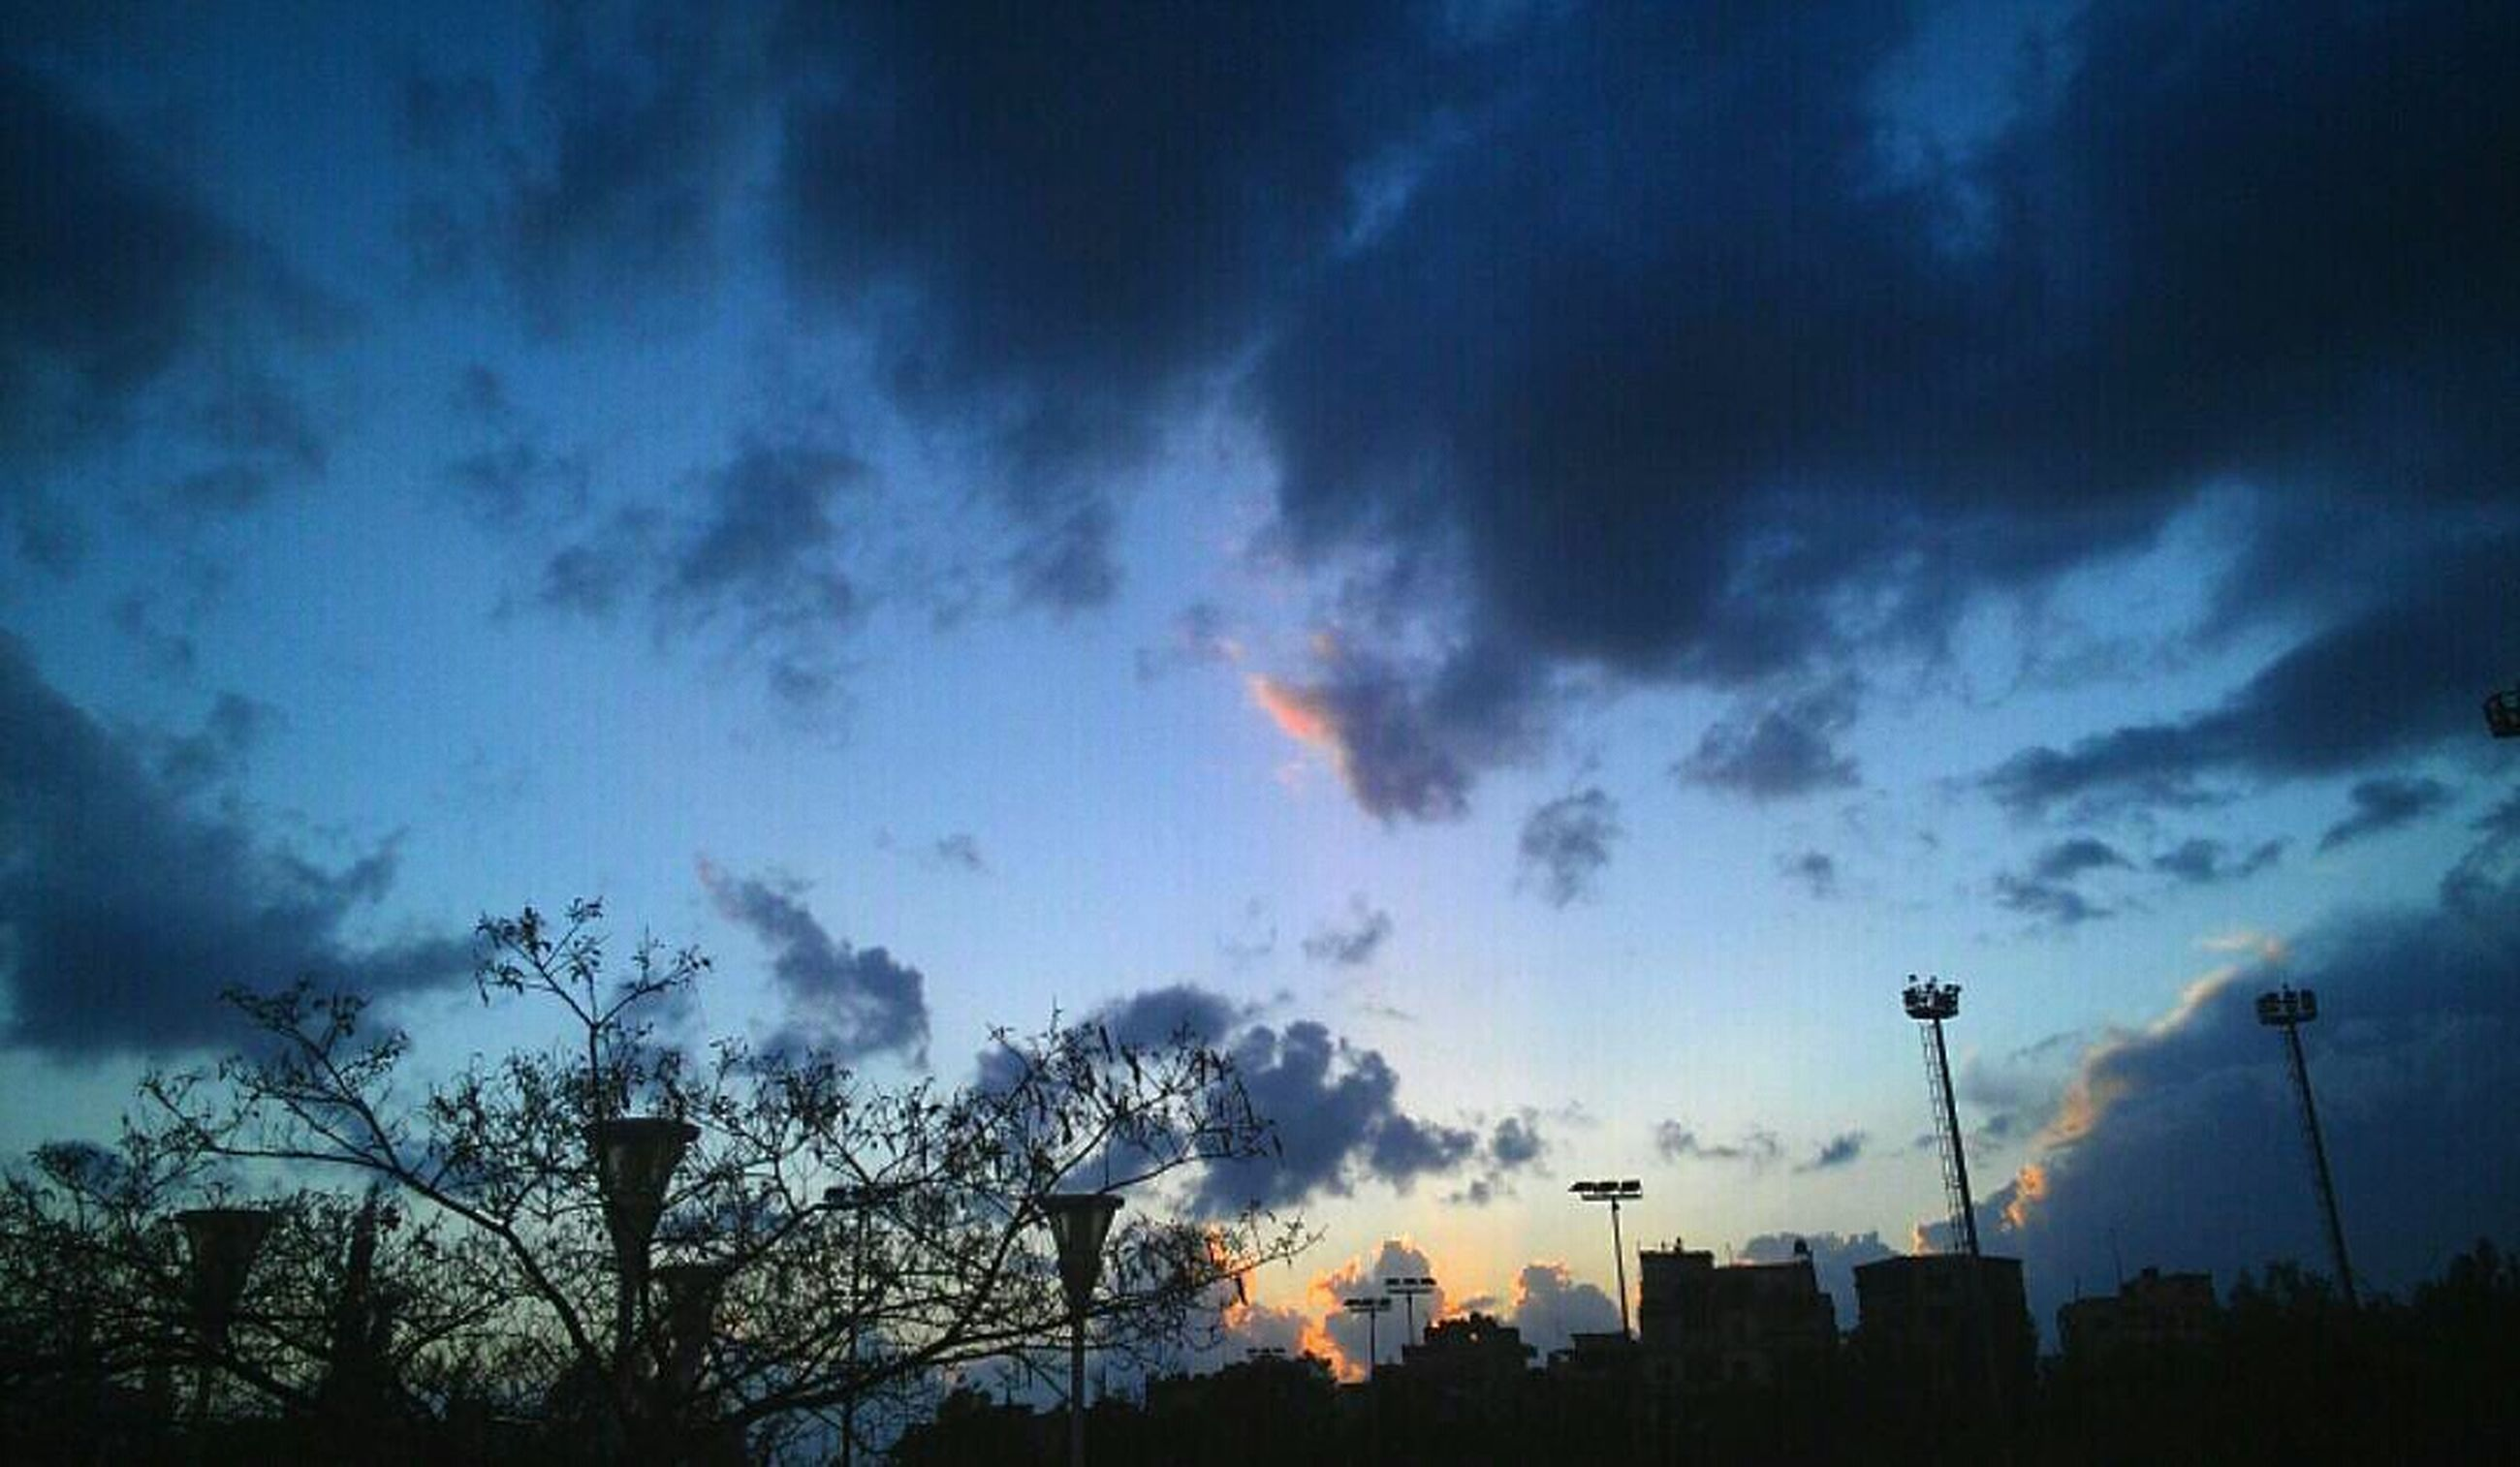 sky, silhouette, low angle view, cloud - sky, cloudy, tree, beauty in nature, sunset, scenics, nature, cloud, dramatic sky, dusk, tranquility, blue, weather, building exterior, overcast, atmospheric mood, tranquil scene